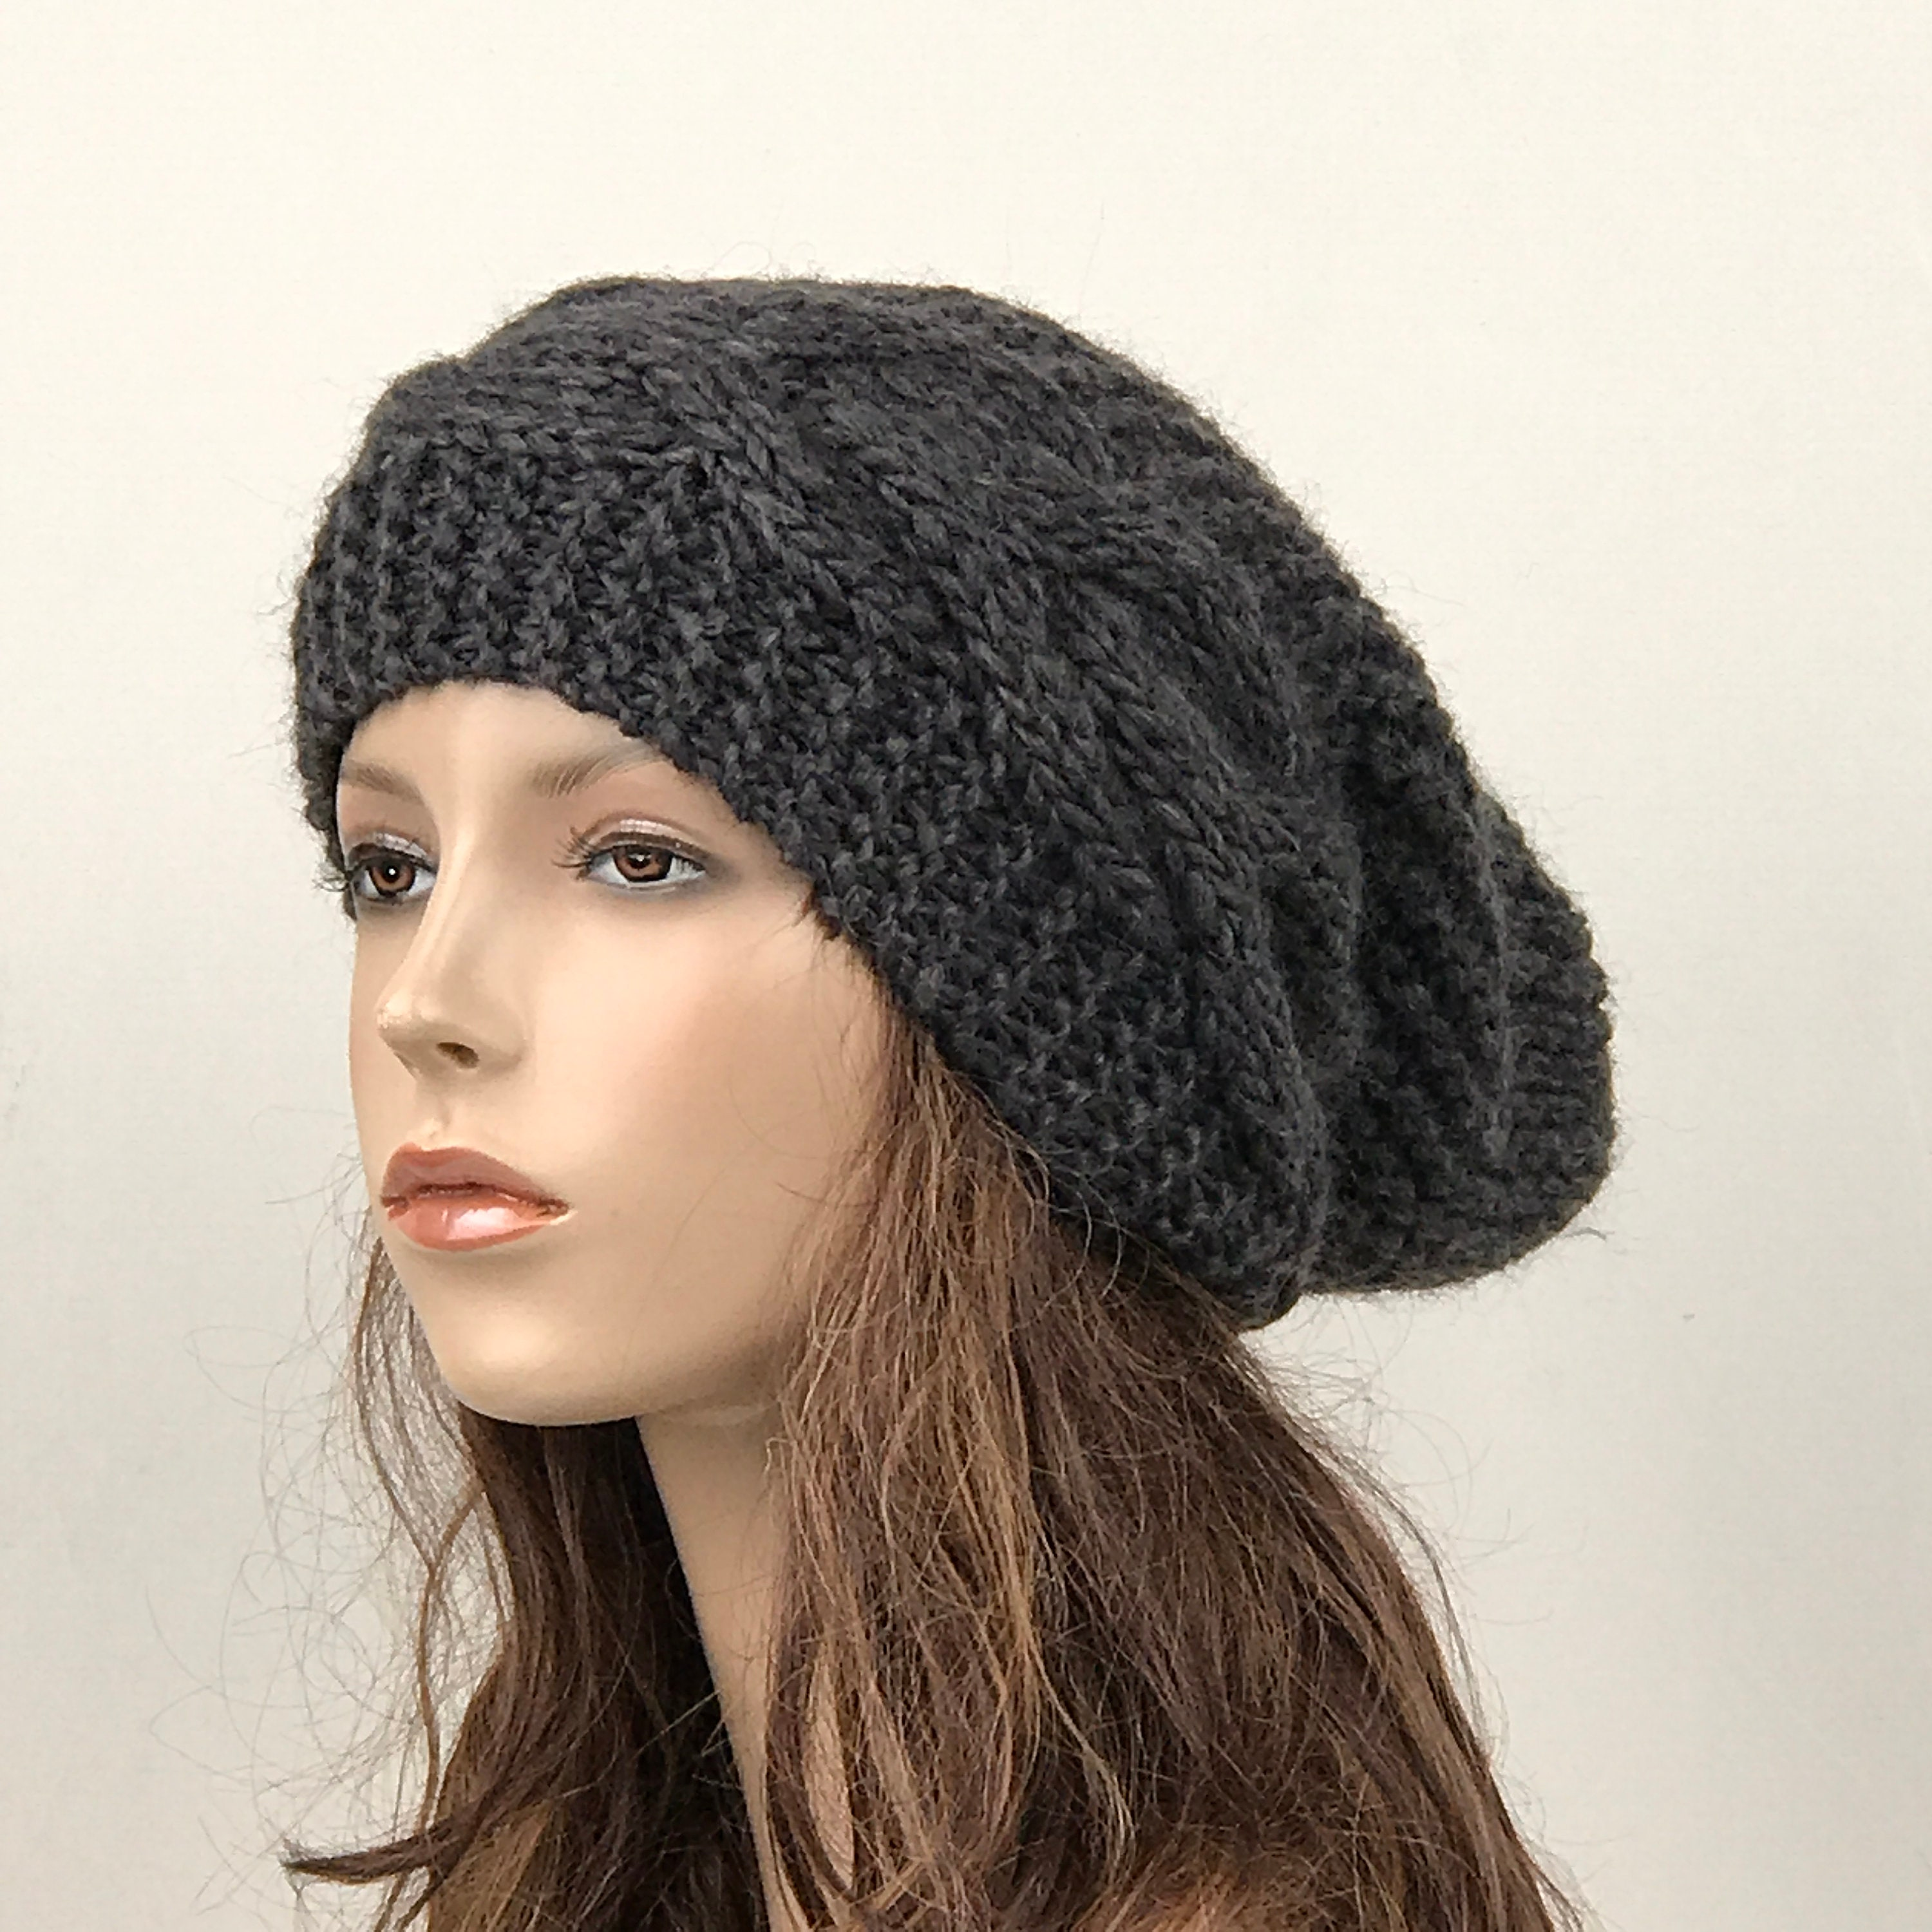 55f4876d16e Hand knit hat Oversized Chunky Wool Hat slouchy hat charcoal hat. 1